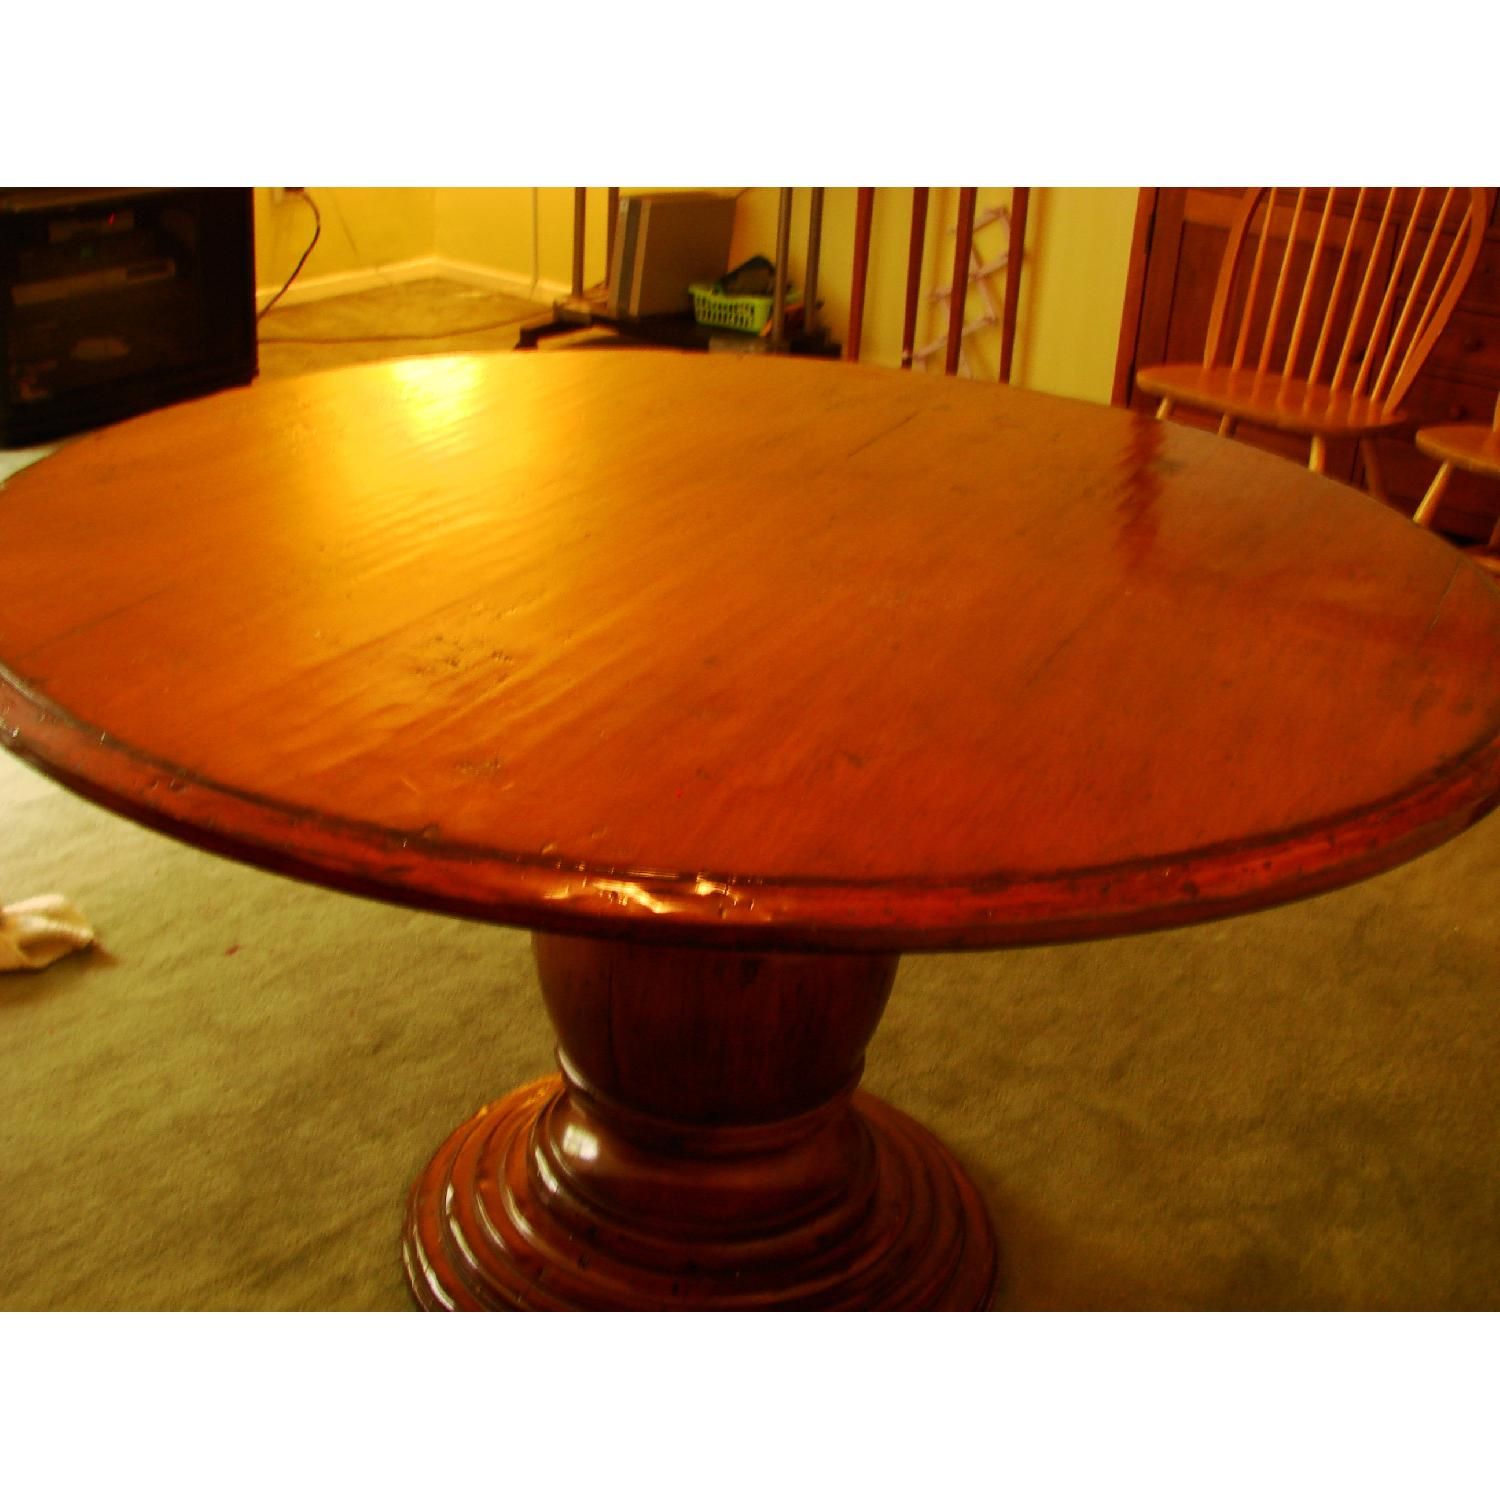 Distressed Wood Round Dining Table - image-4